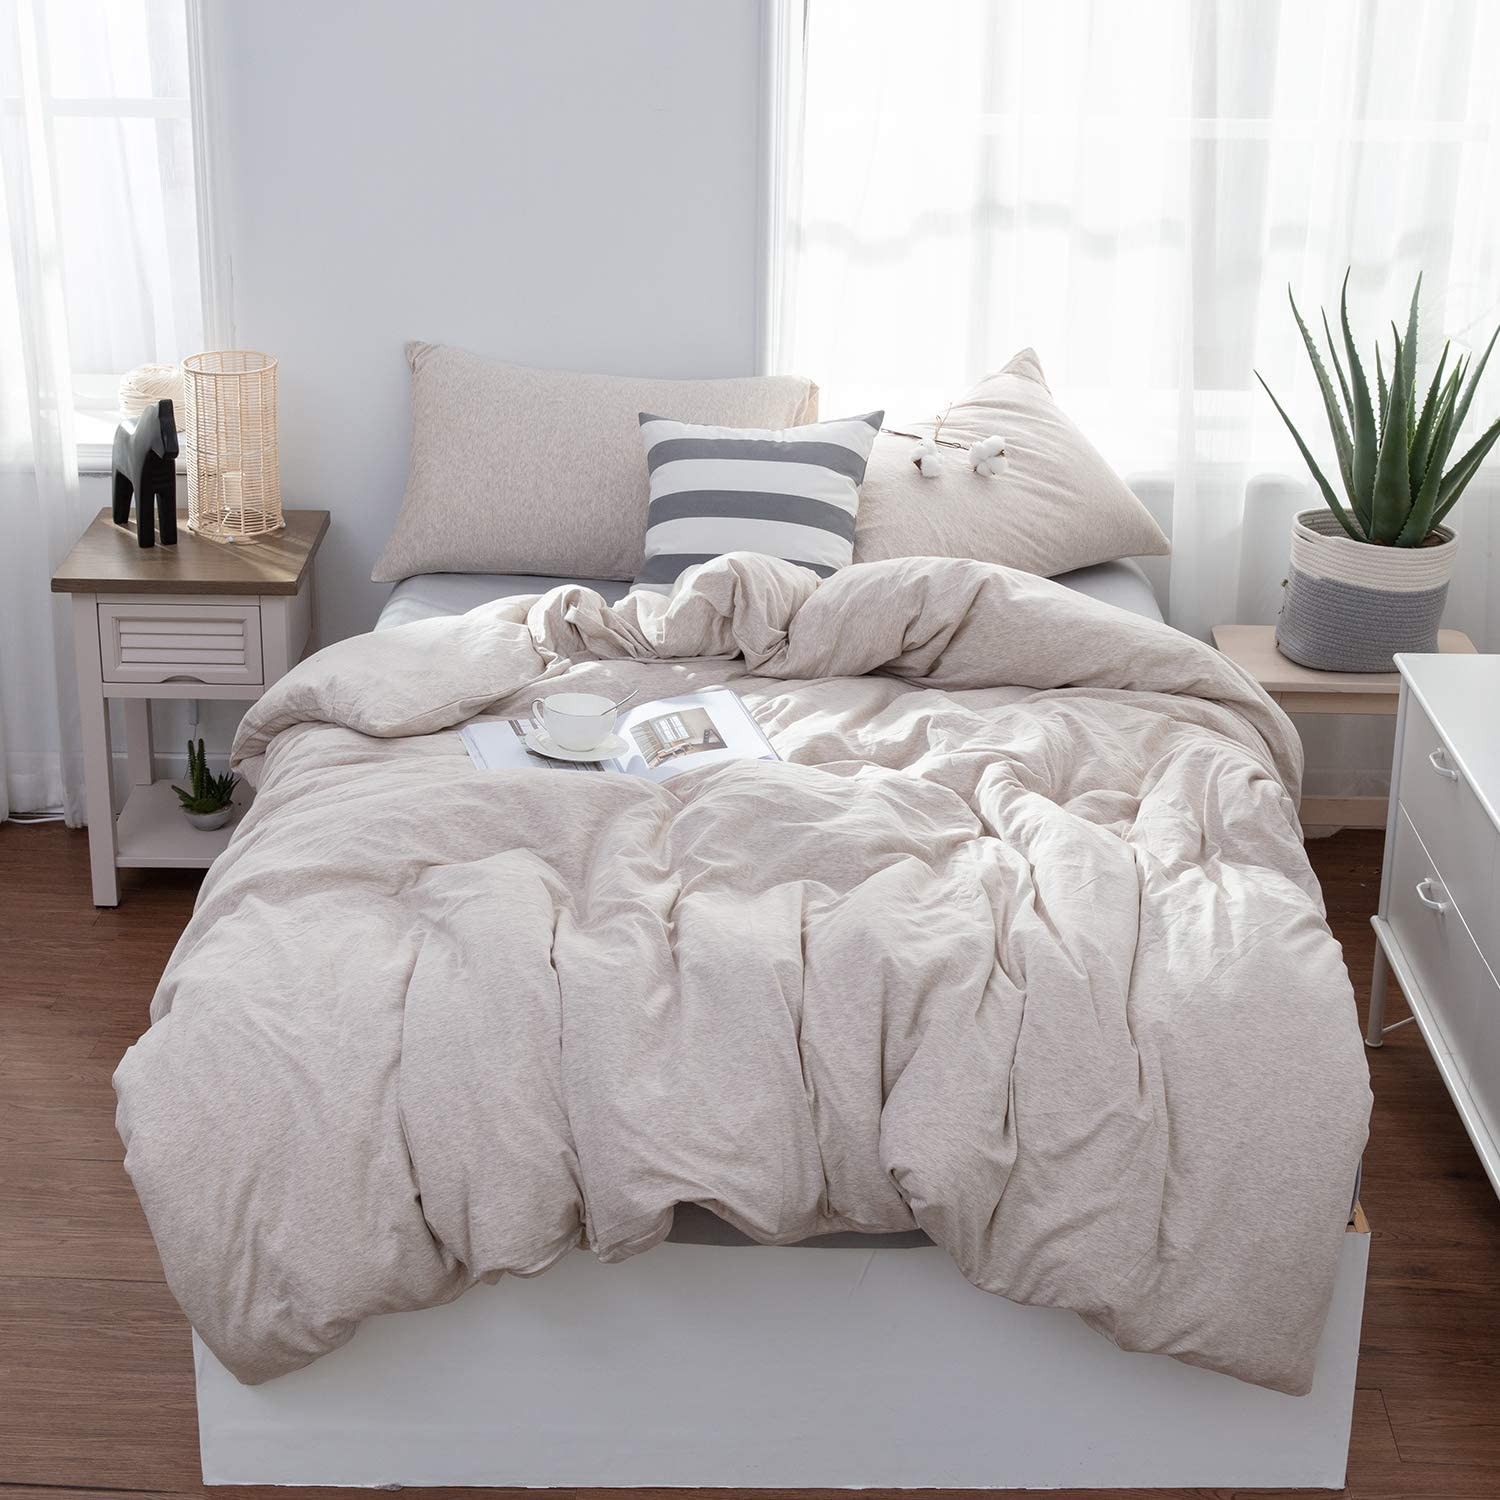 LIFETOWN Jersey Knit Cotton Duvet Cover Twin, 1 Duvet Cover and 2 Pillowcases, Simple Solid Design, Super Soft and Easy Care (Twin/Twin XL, Light Coffee)